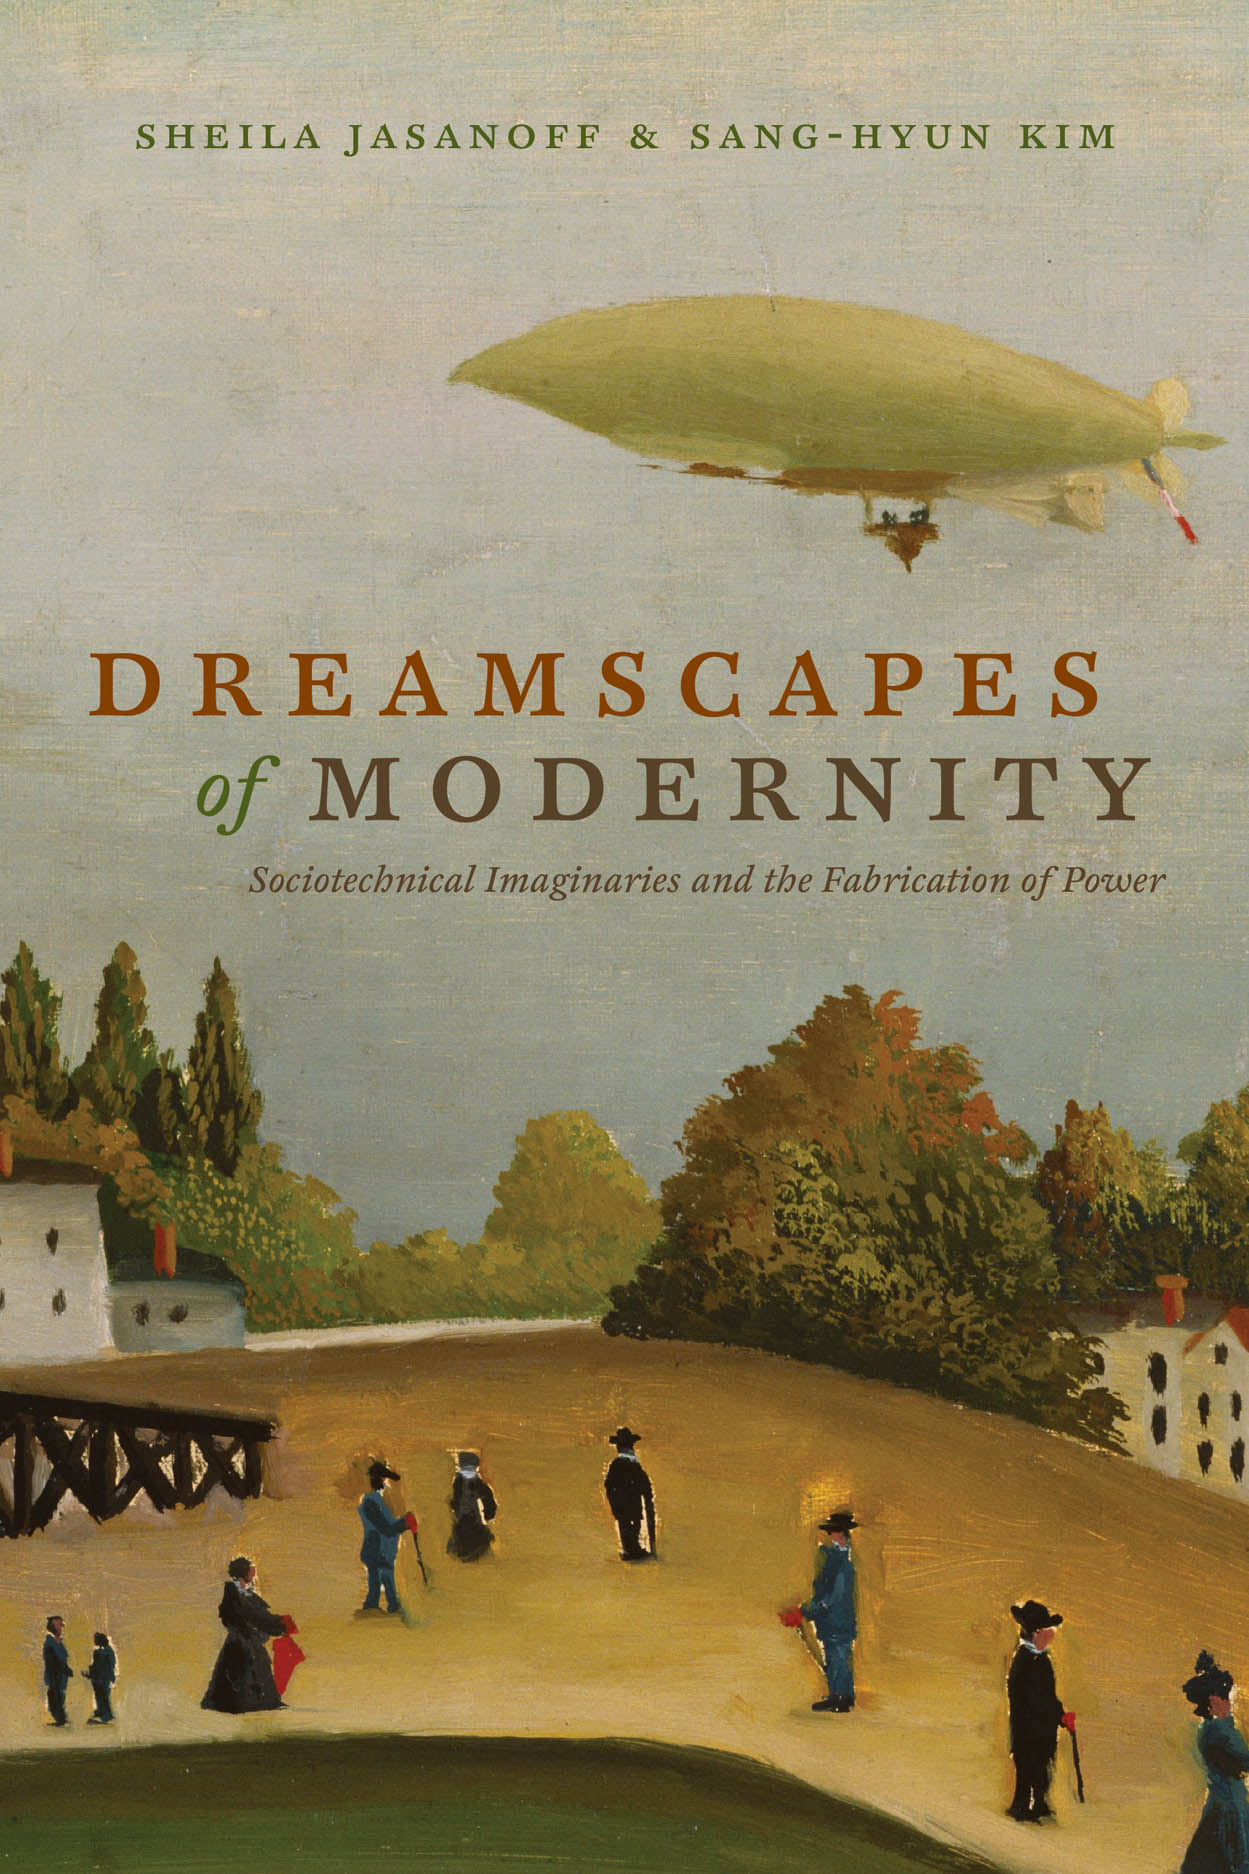 Dreamscapes of Modernity